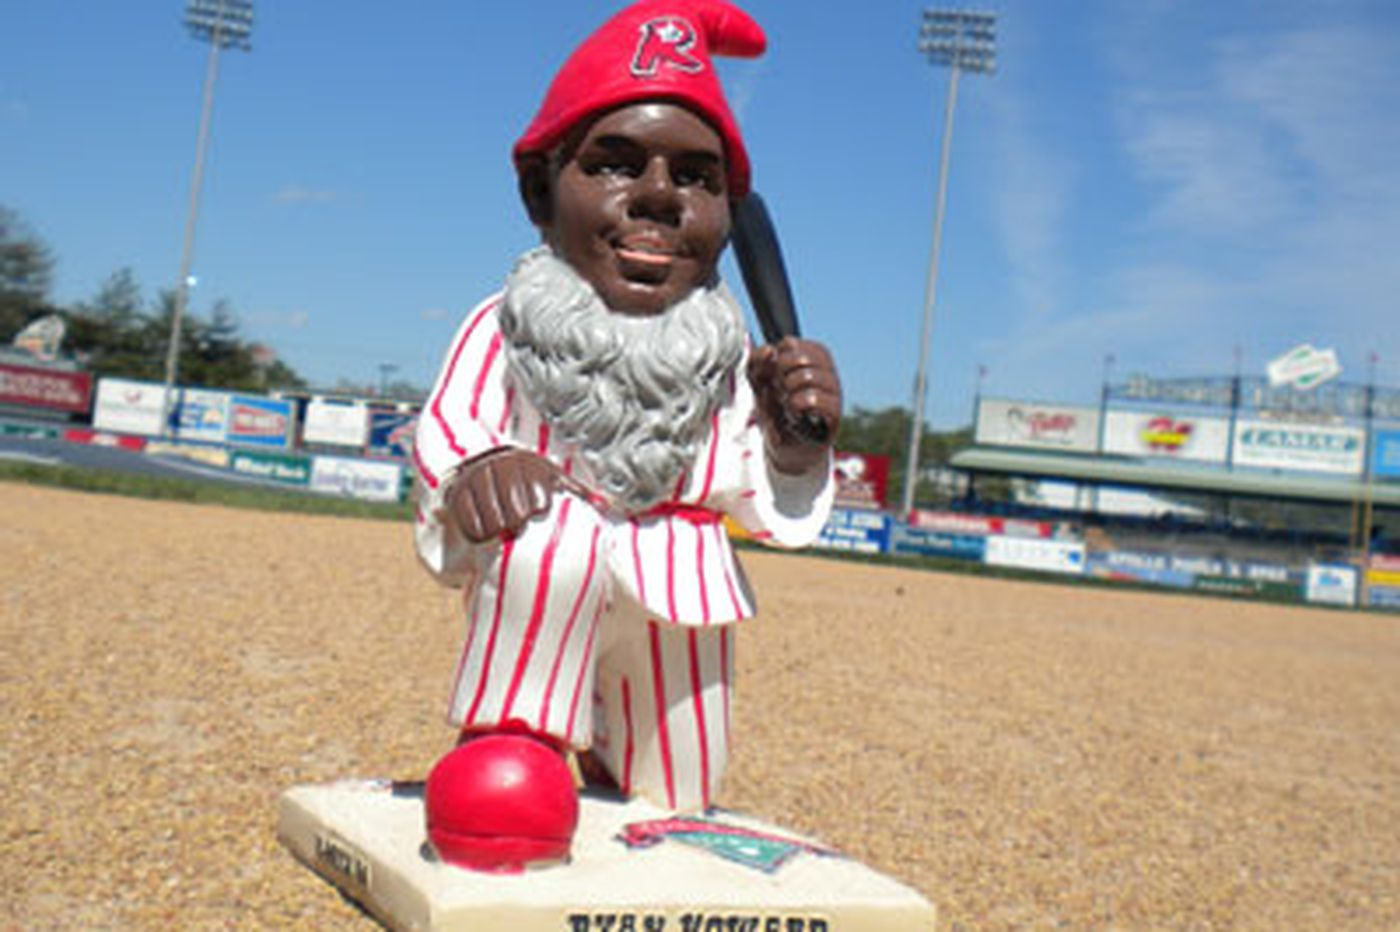 Annette John-Hall: Garden gnome giveaway is no all-star